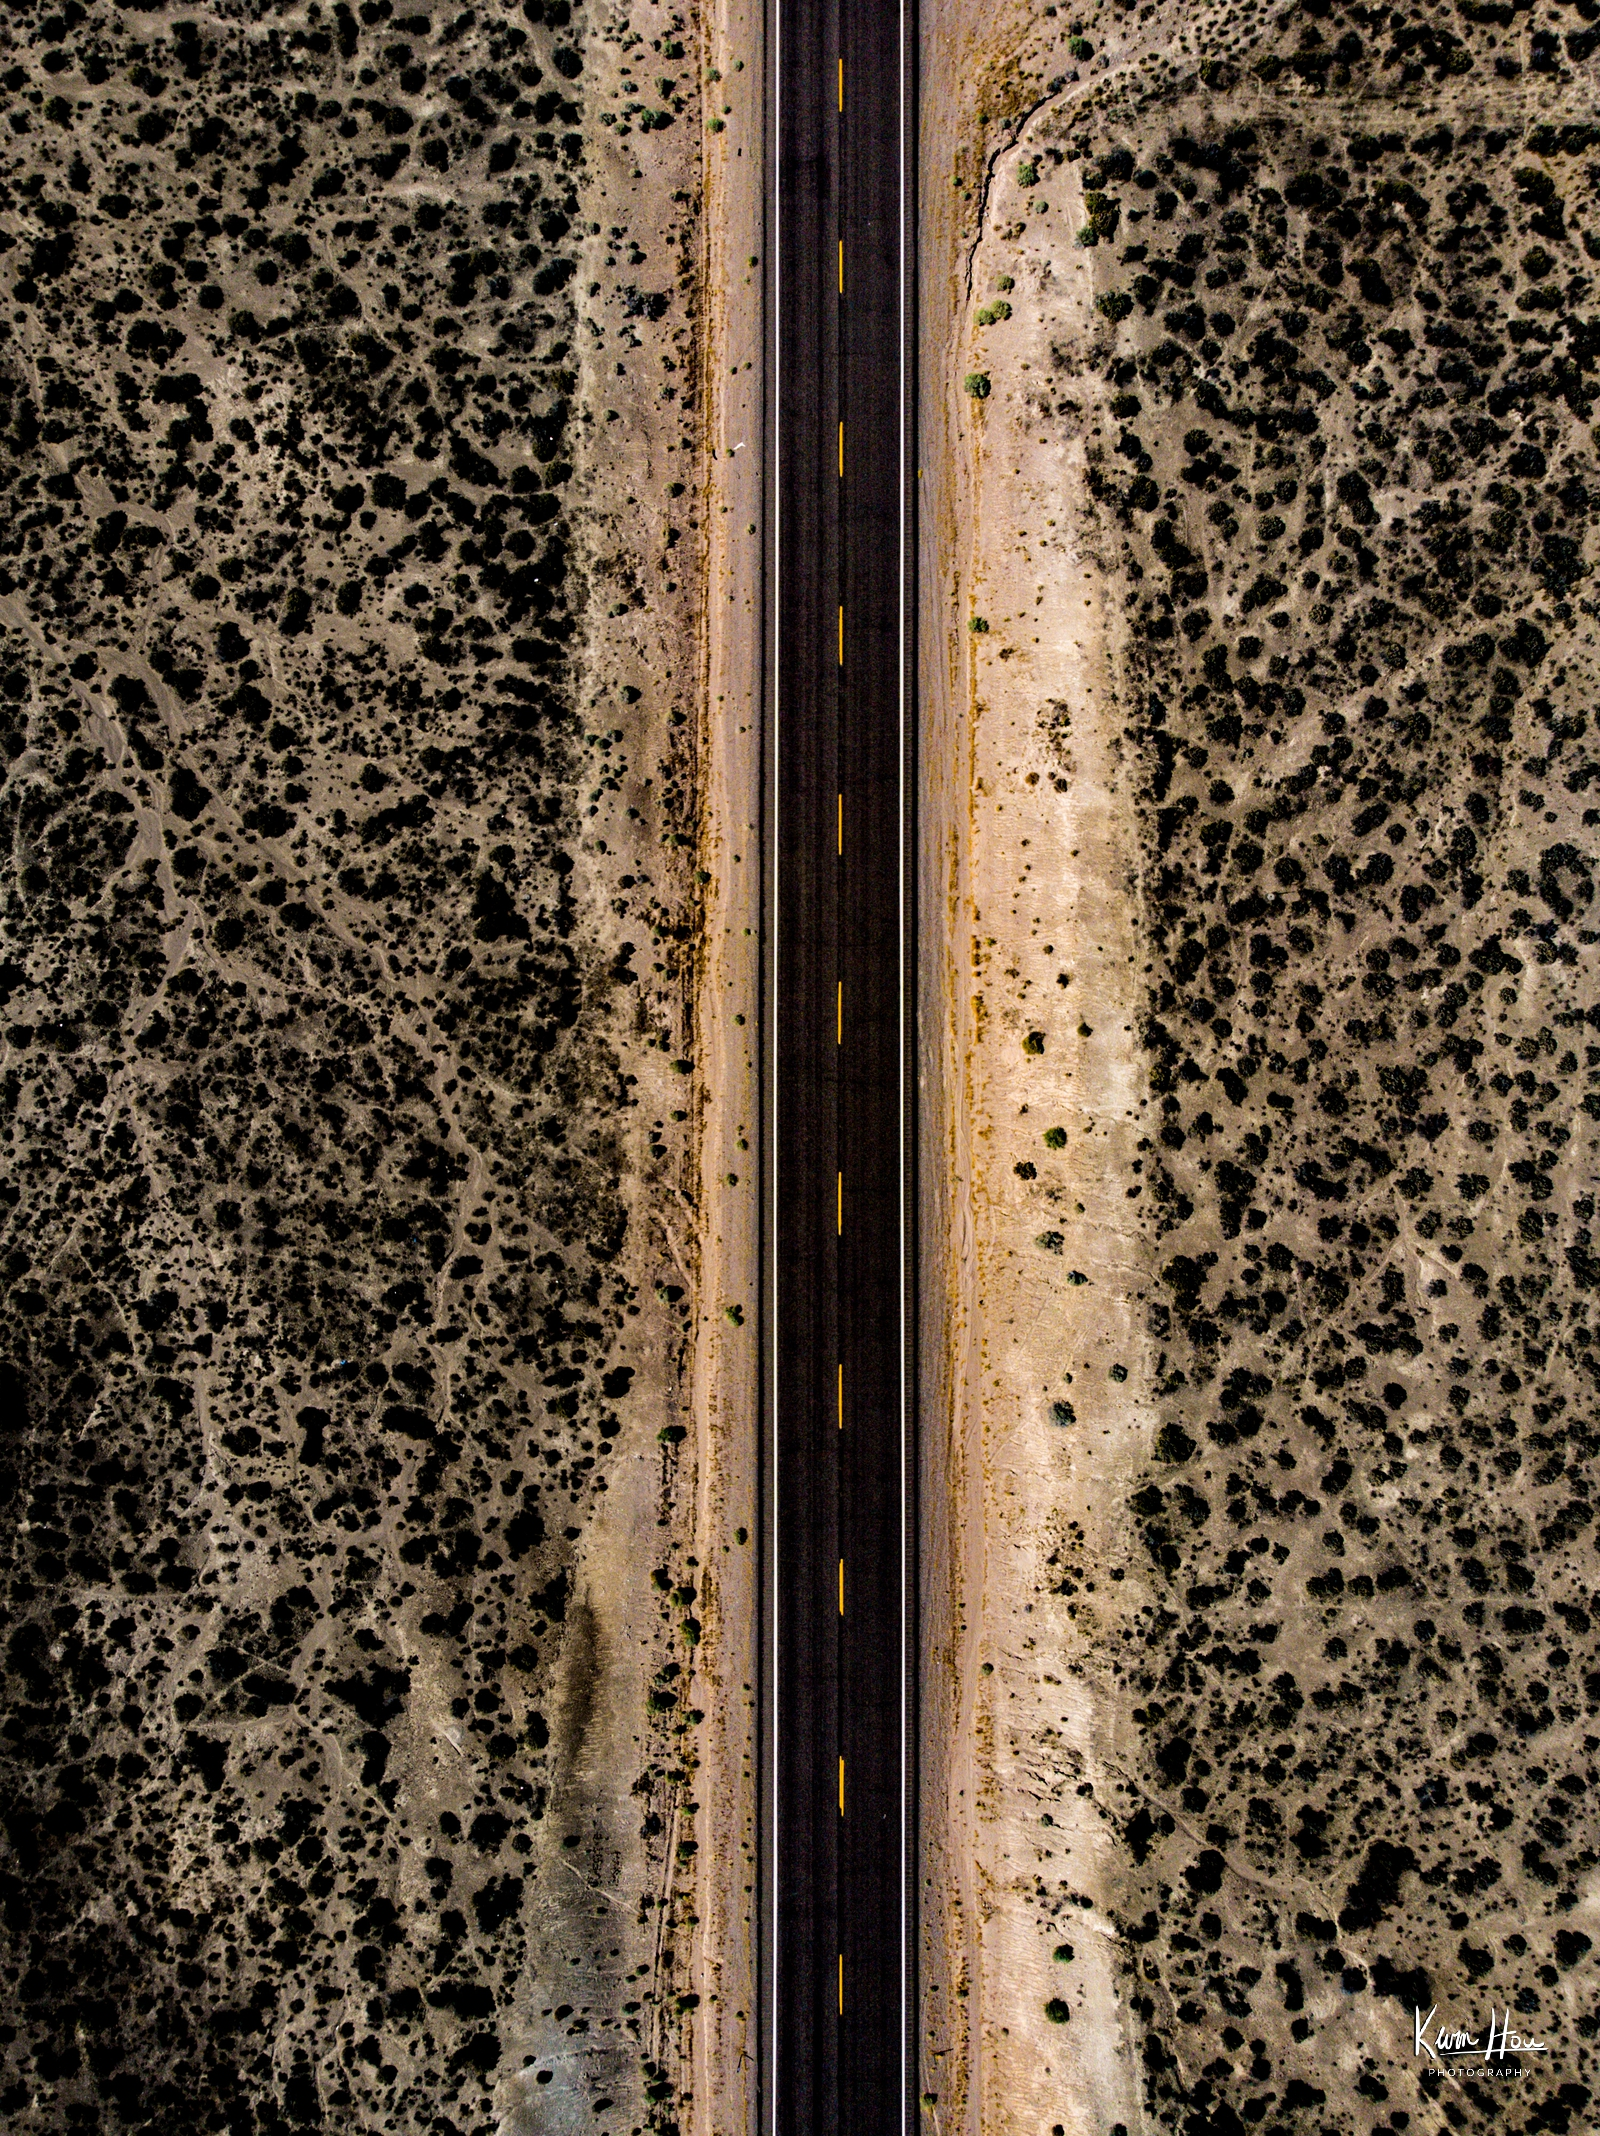 Loneliest Road Vertical Drone (Top Down)